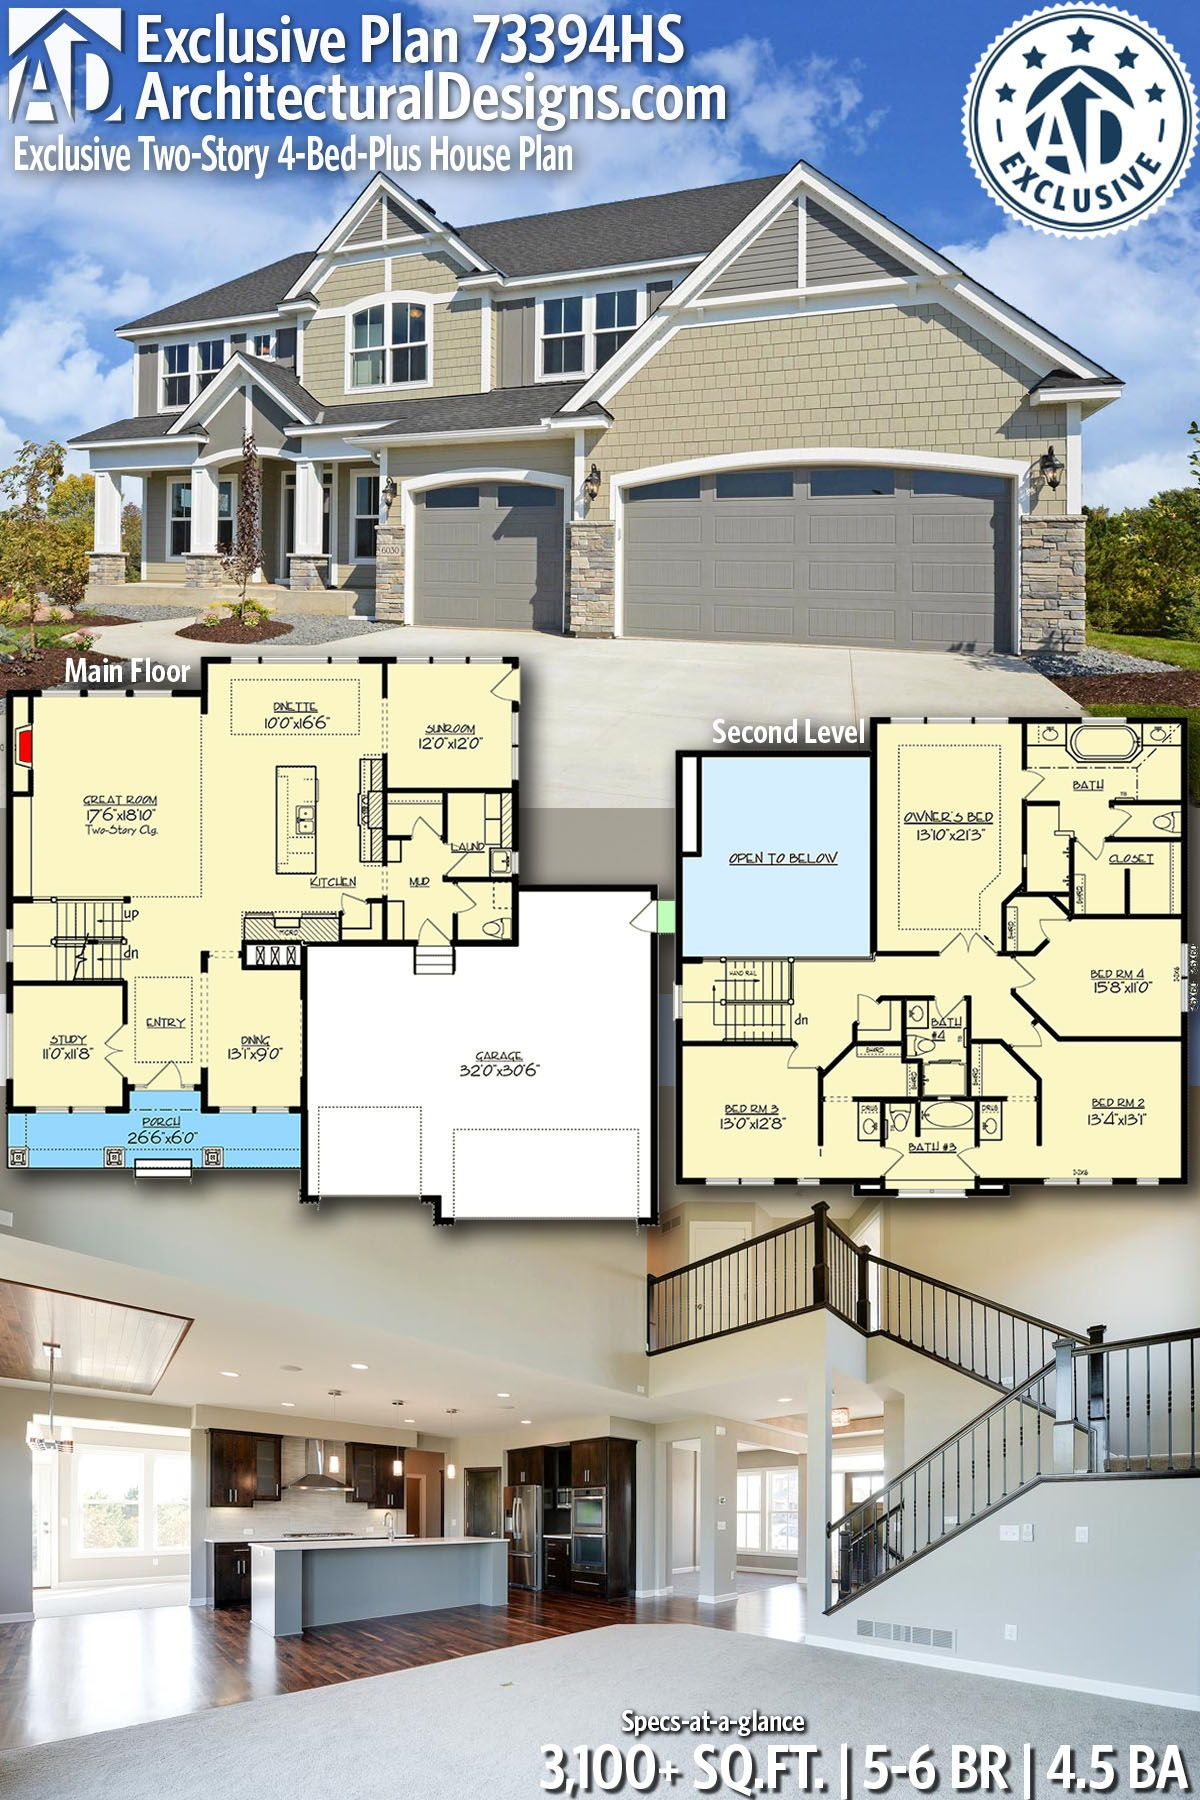 Plan 73394hs Exclusive Two Story 4 Bed Plus House Plan House Blueprints Exclusive House Plan New House Plans